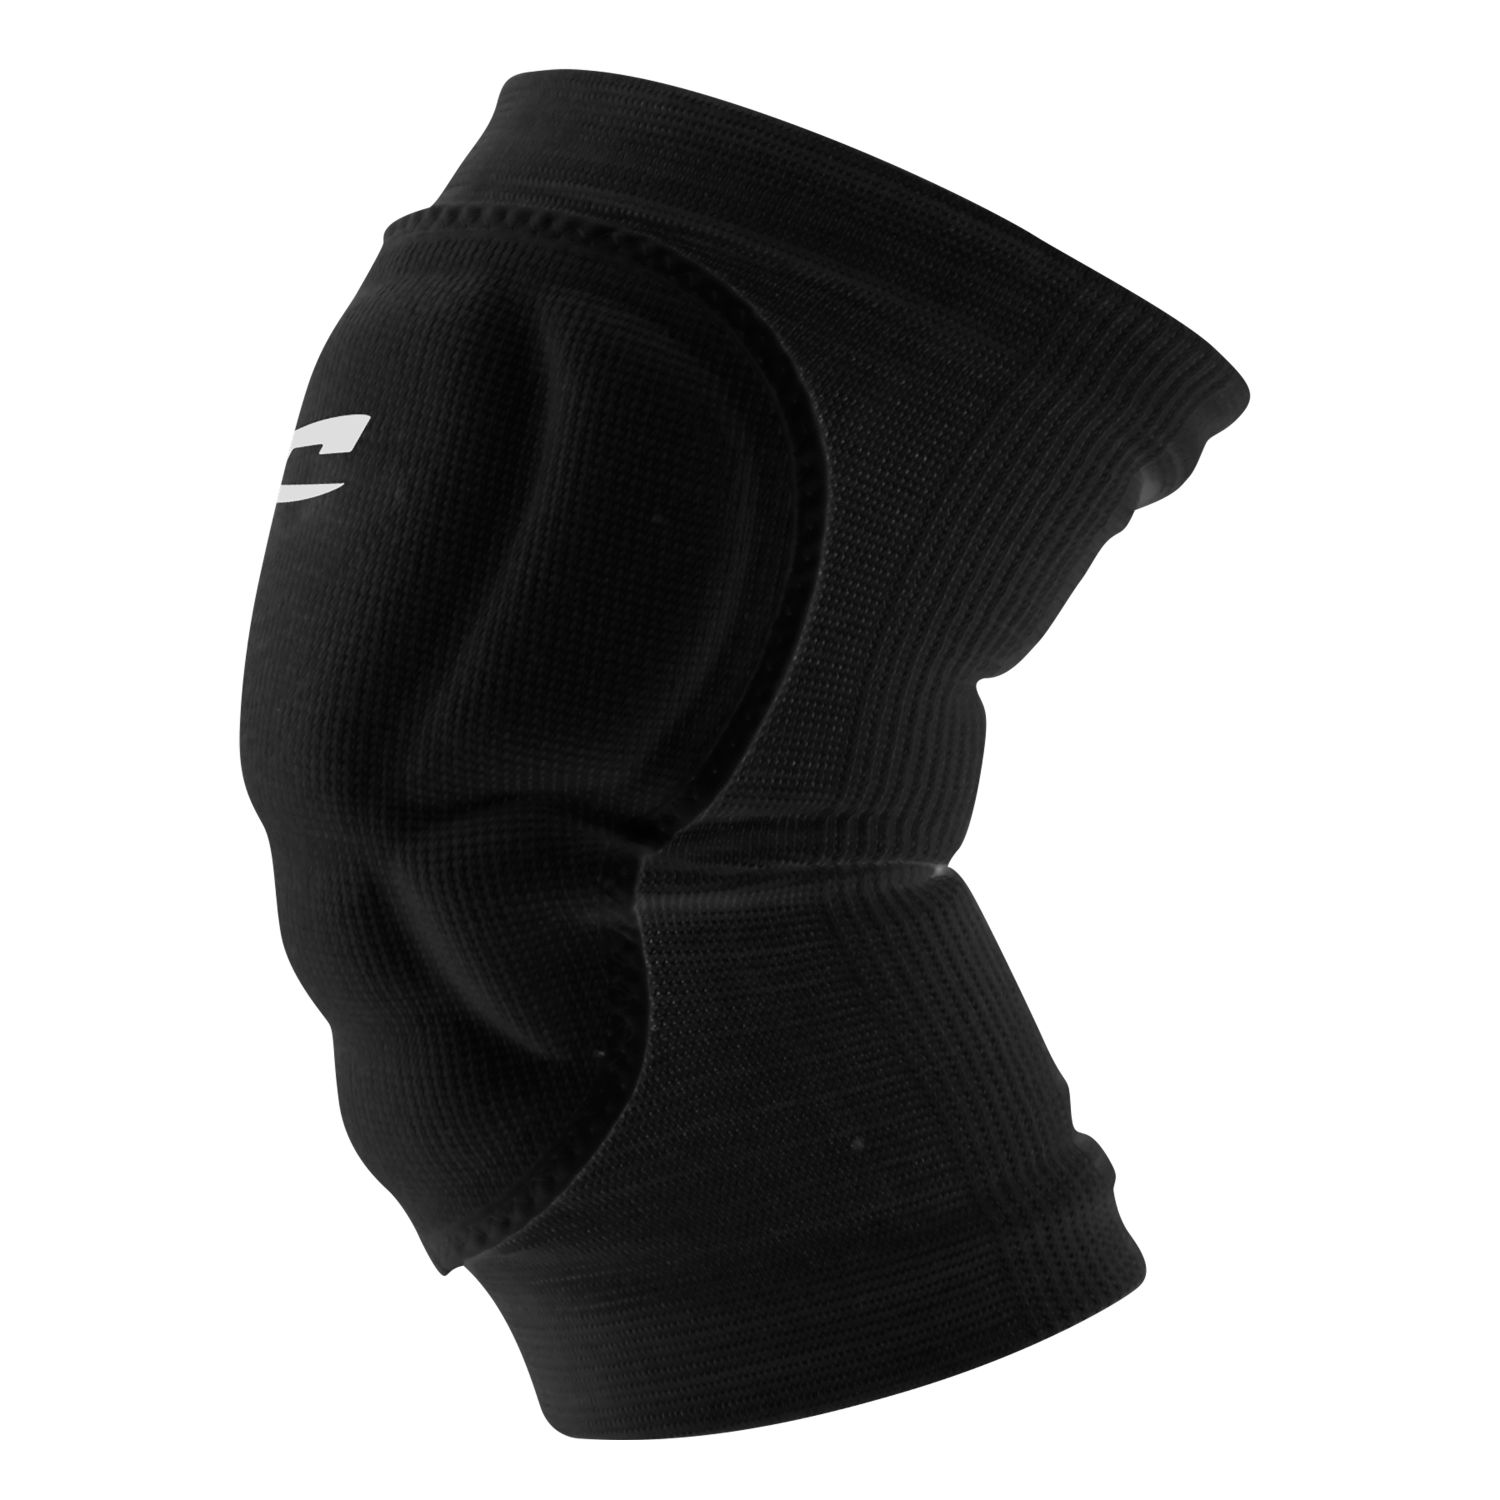 Champro Youth High Compression Low Profile Knee Pad Black